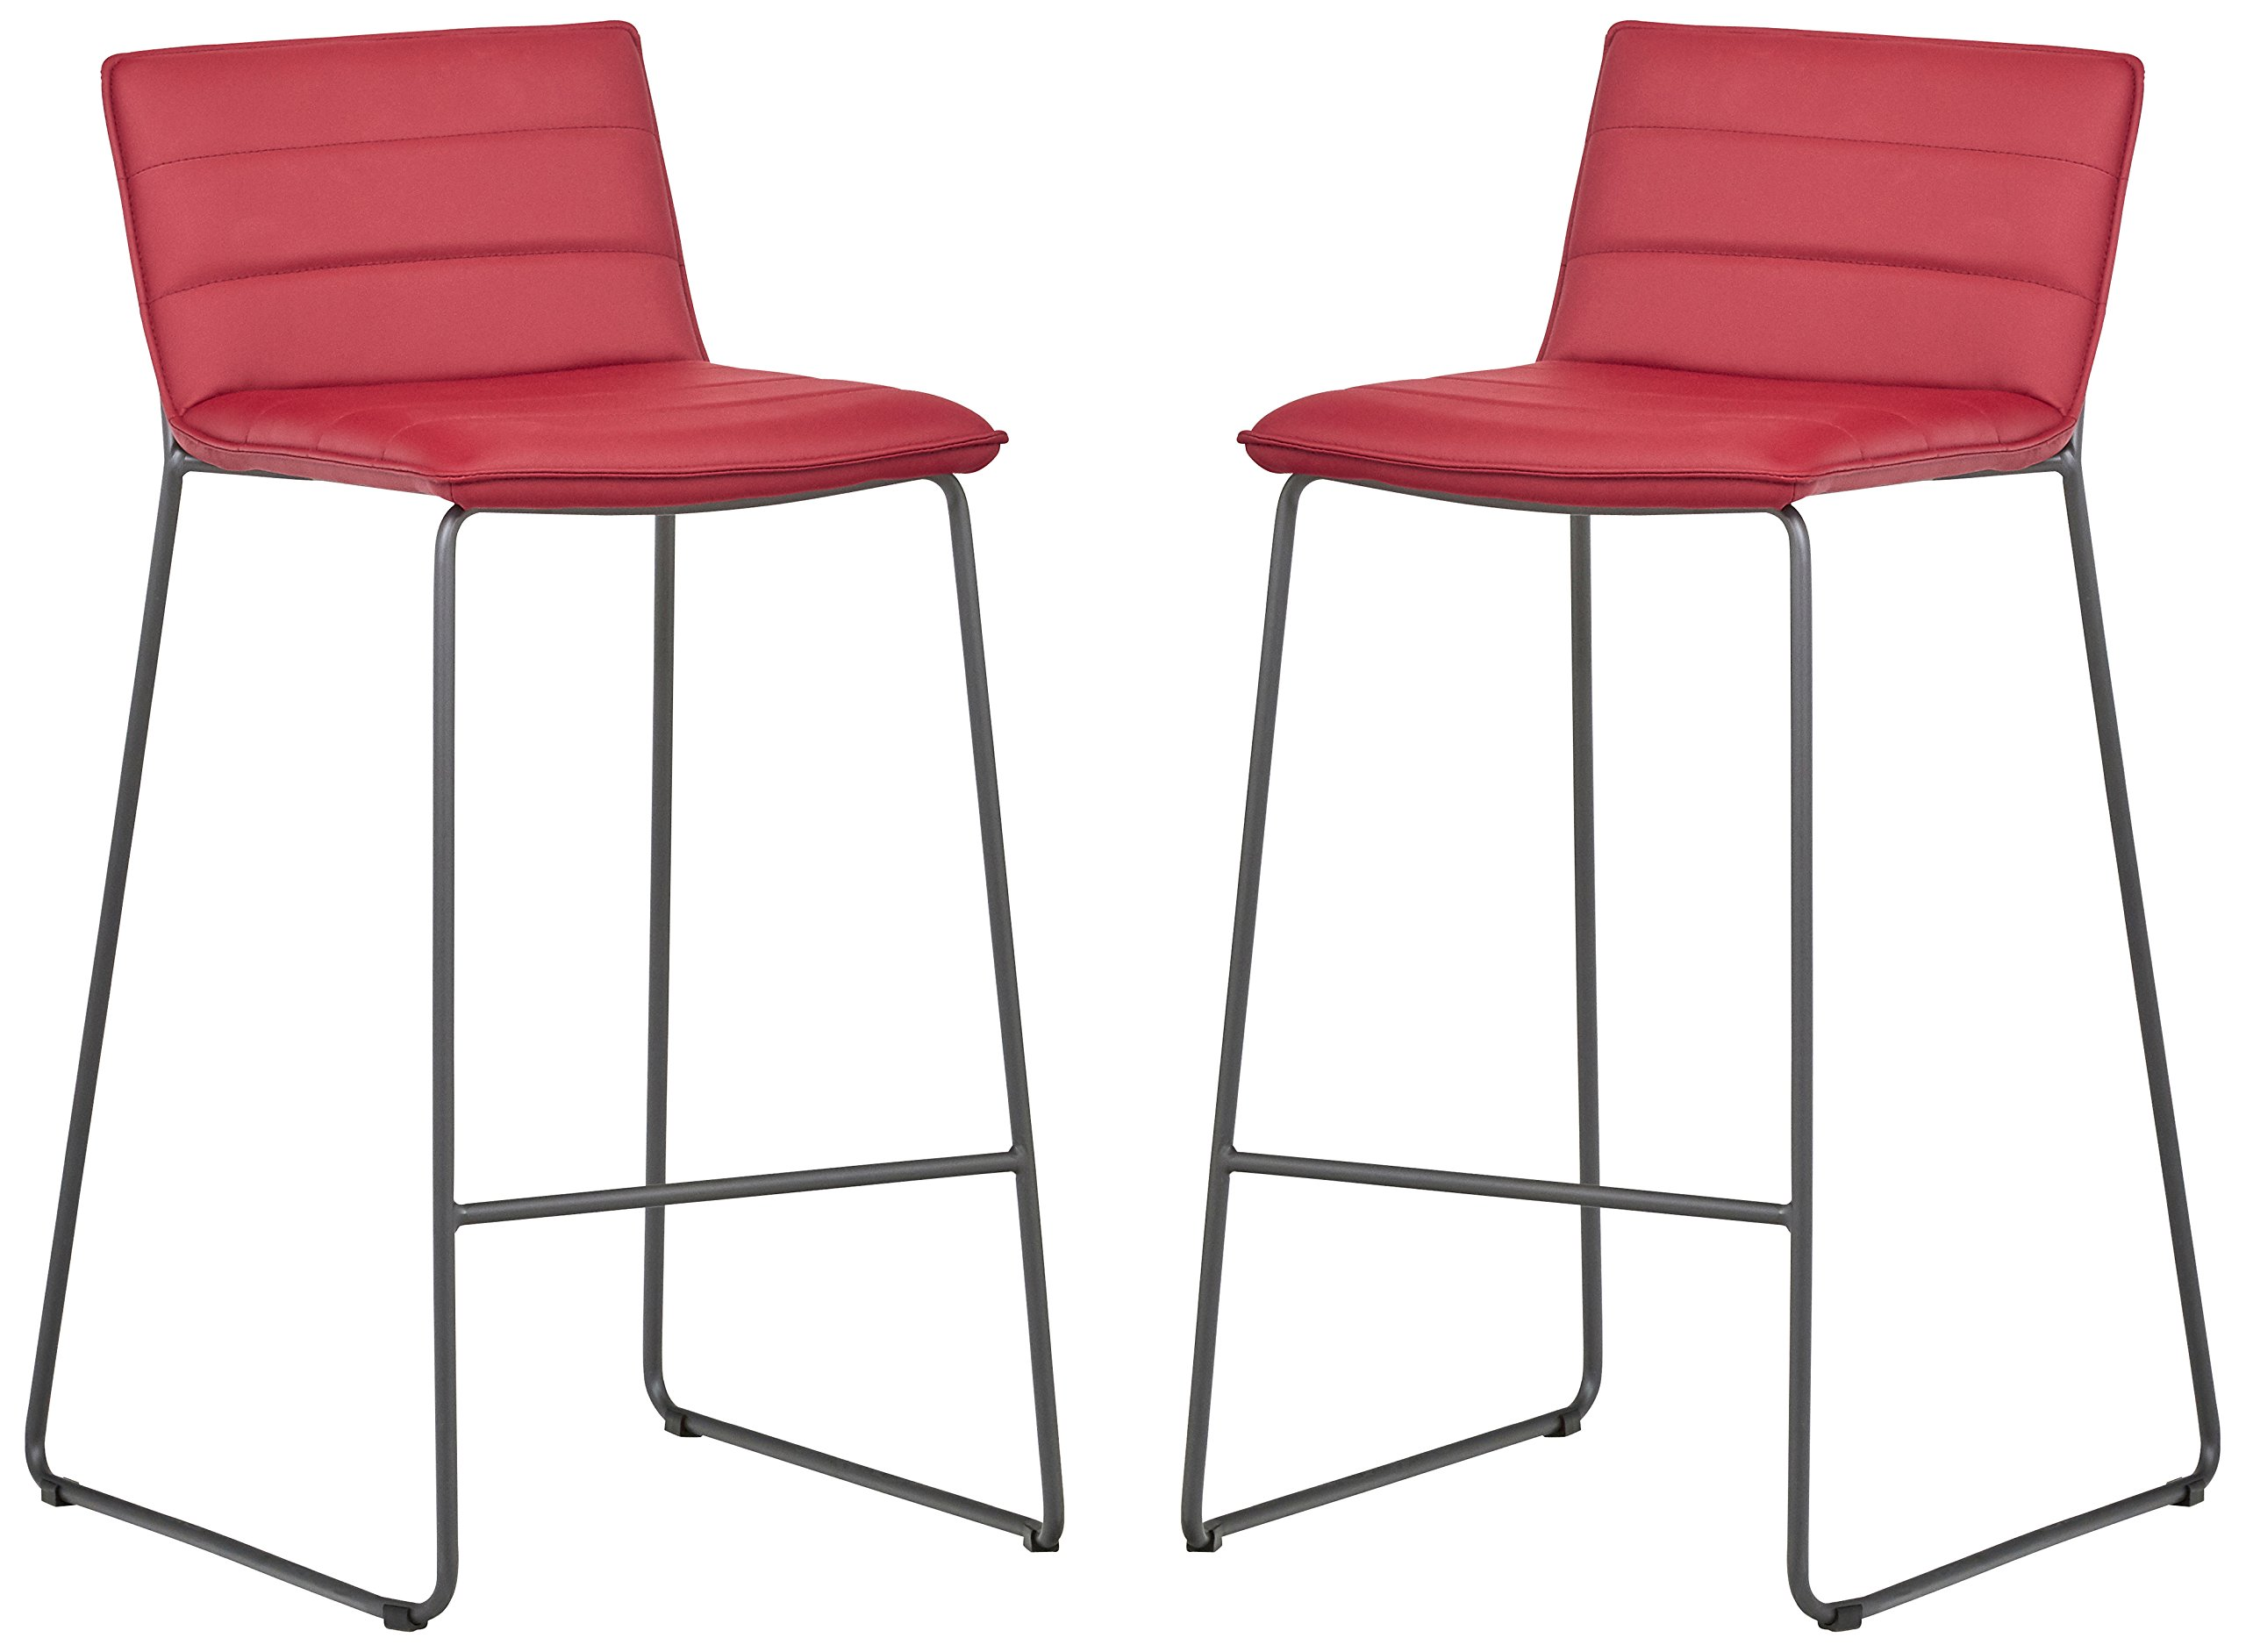 Rivet Julian Minimalist Modern Tufted Kitchen Bar Height Stools, Set of 2, 37.8 Inch Height, Synthetic Leather, Red by Rivet